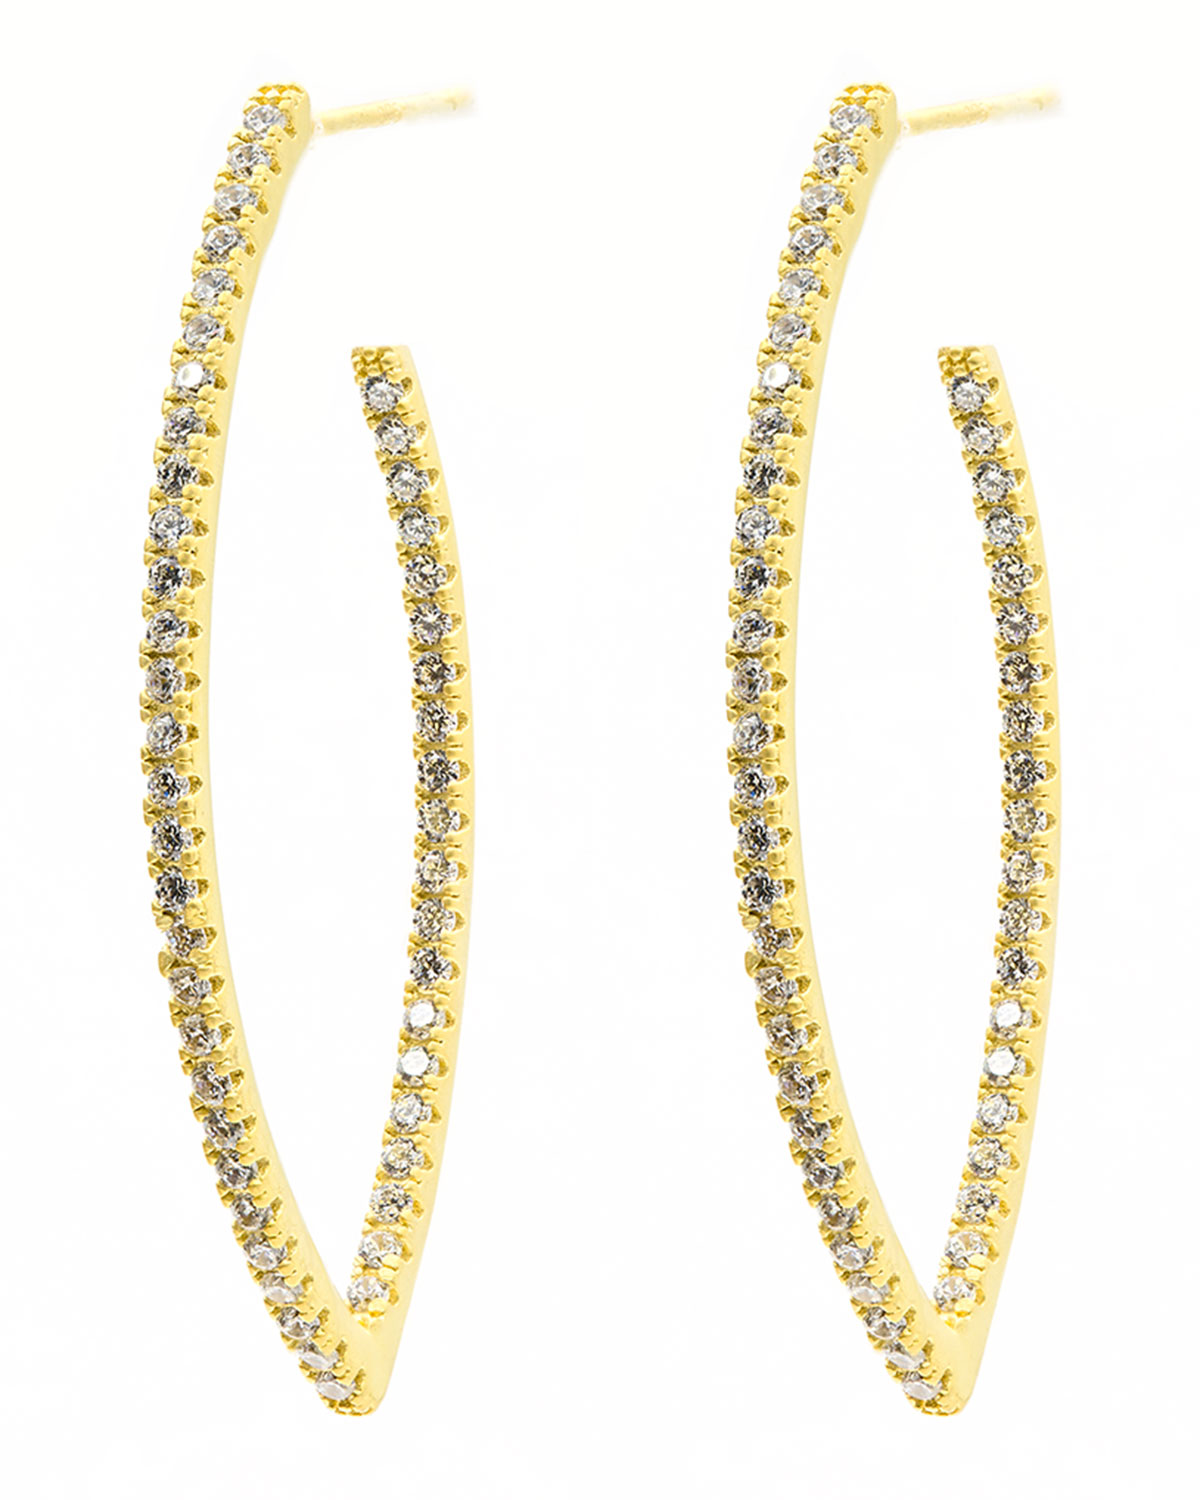 Signature Allover Pave Pointed Hoop Earrings